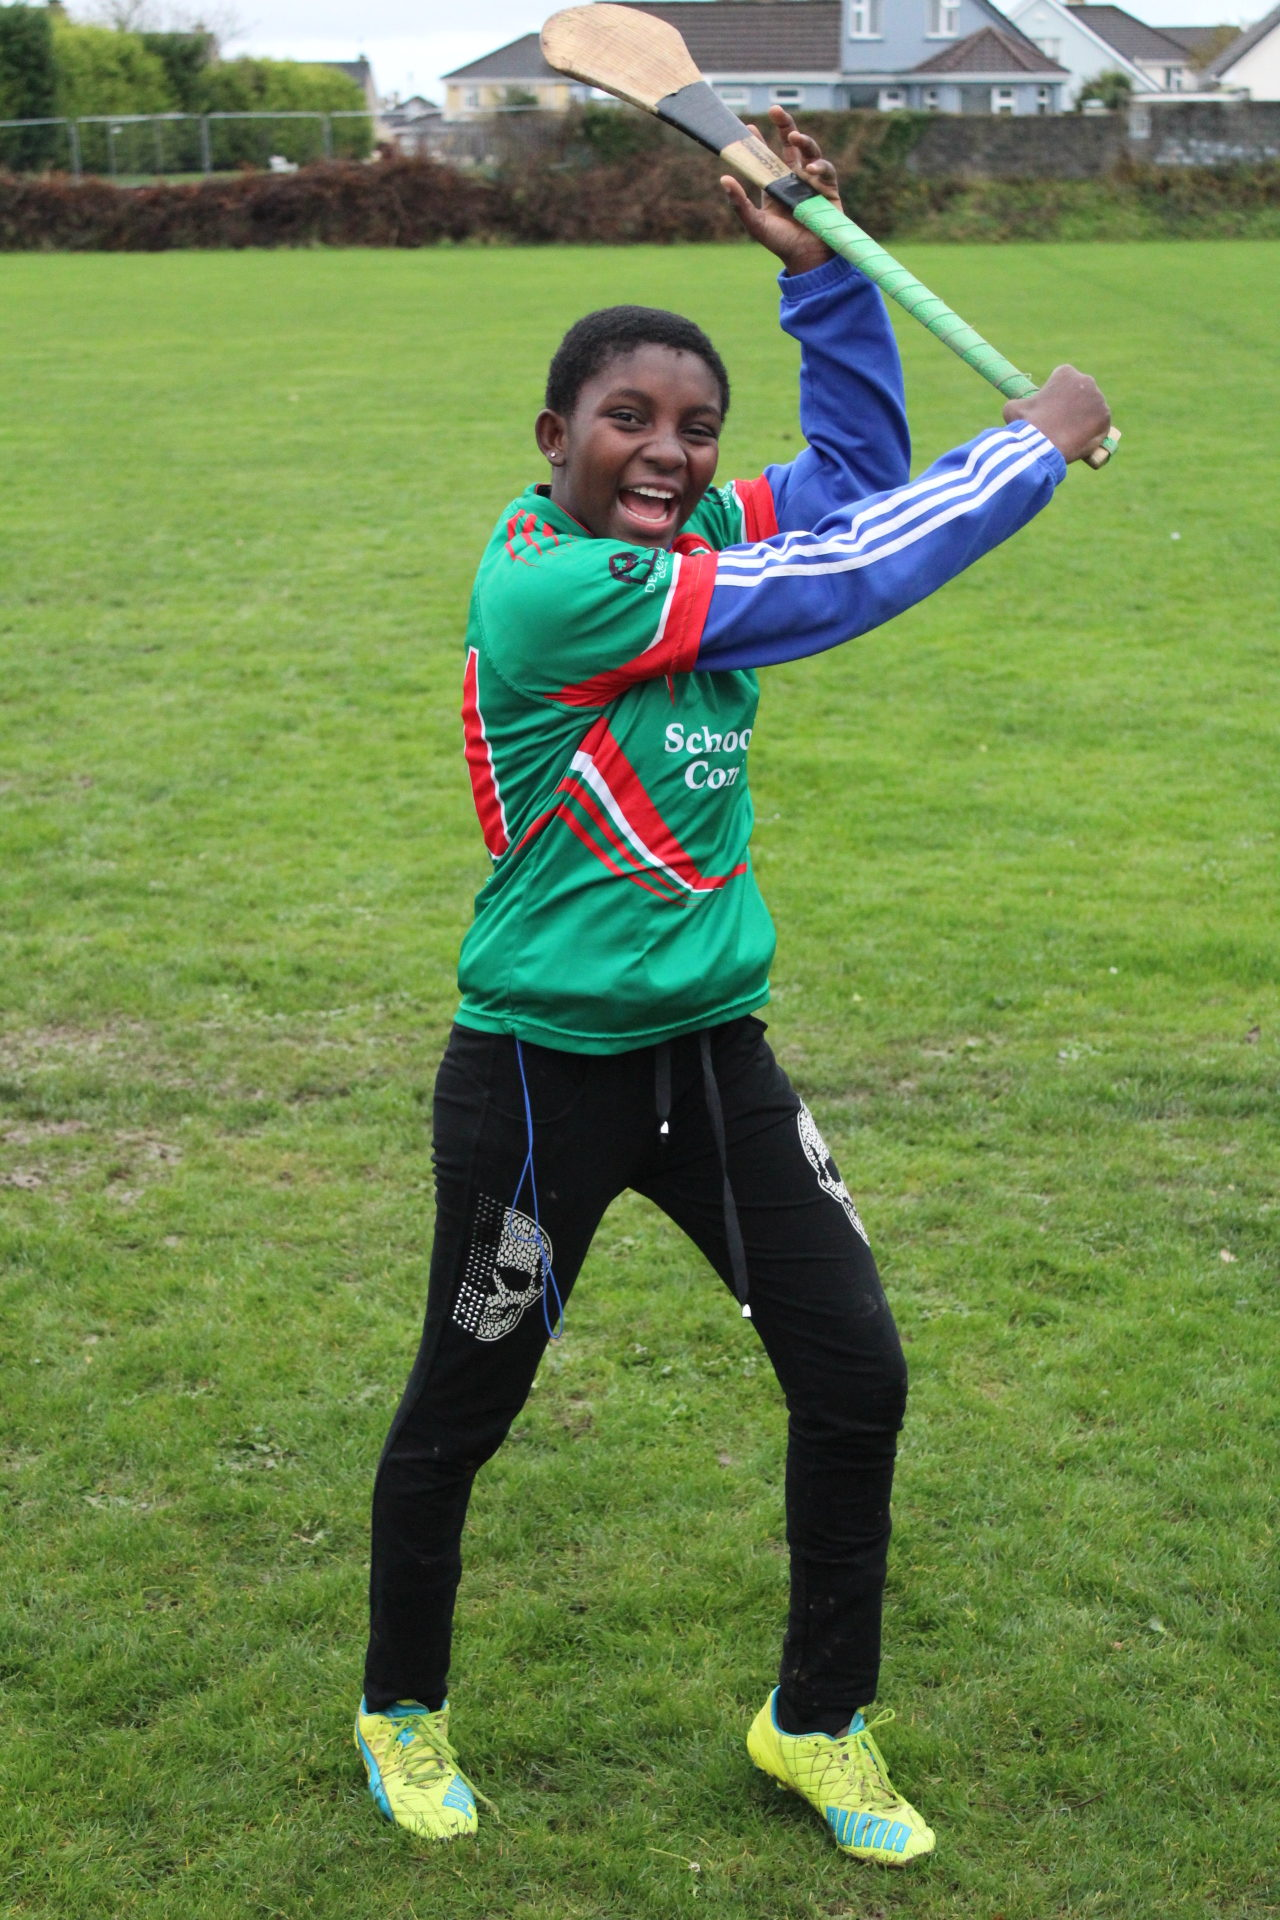 Nov 2018: Mary Odigie who played with Desmond College against Abbeyfeale